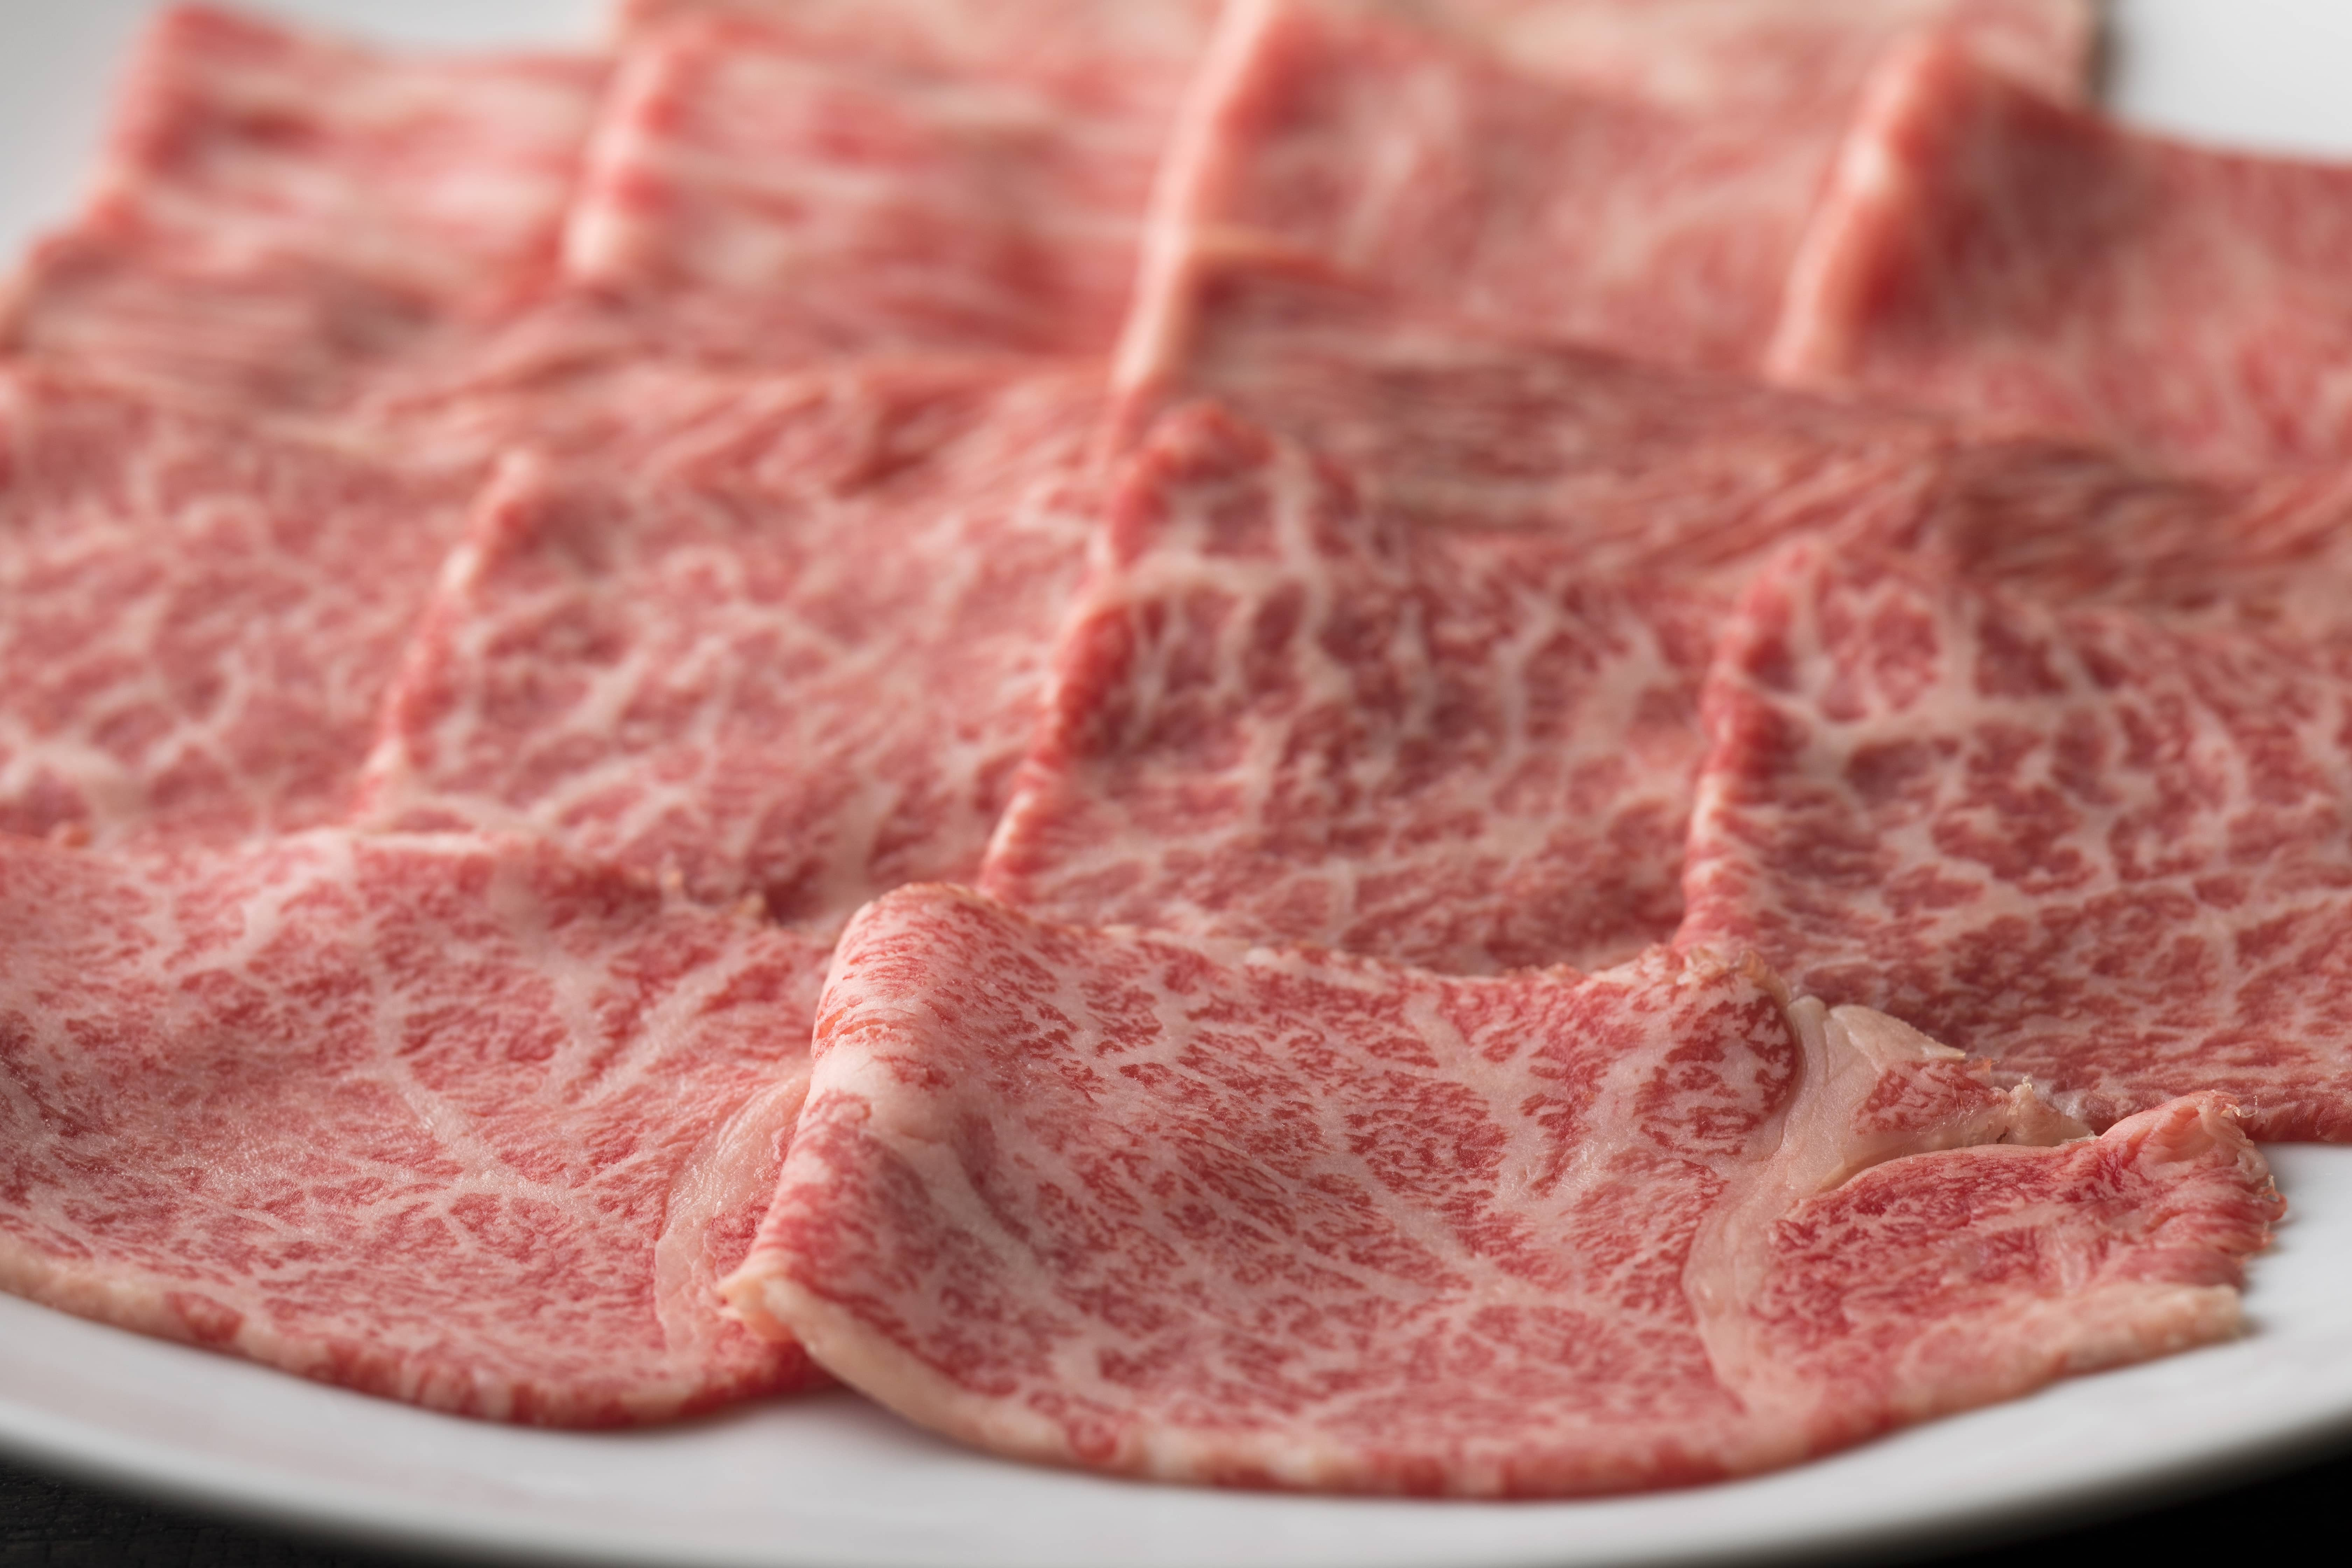 Thinly sliced wagyu beef.